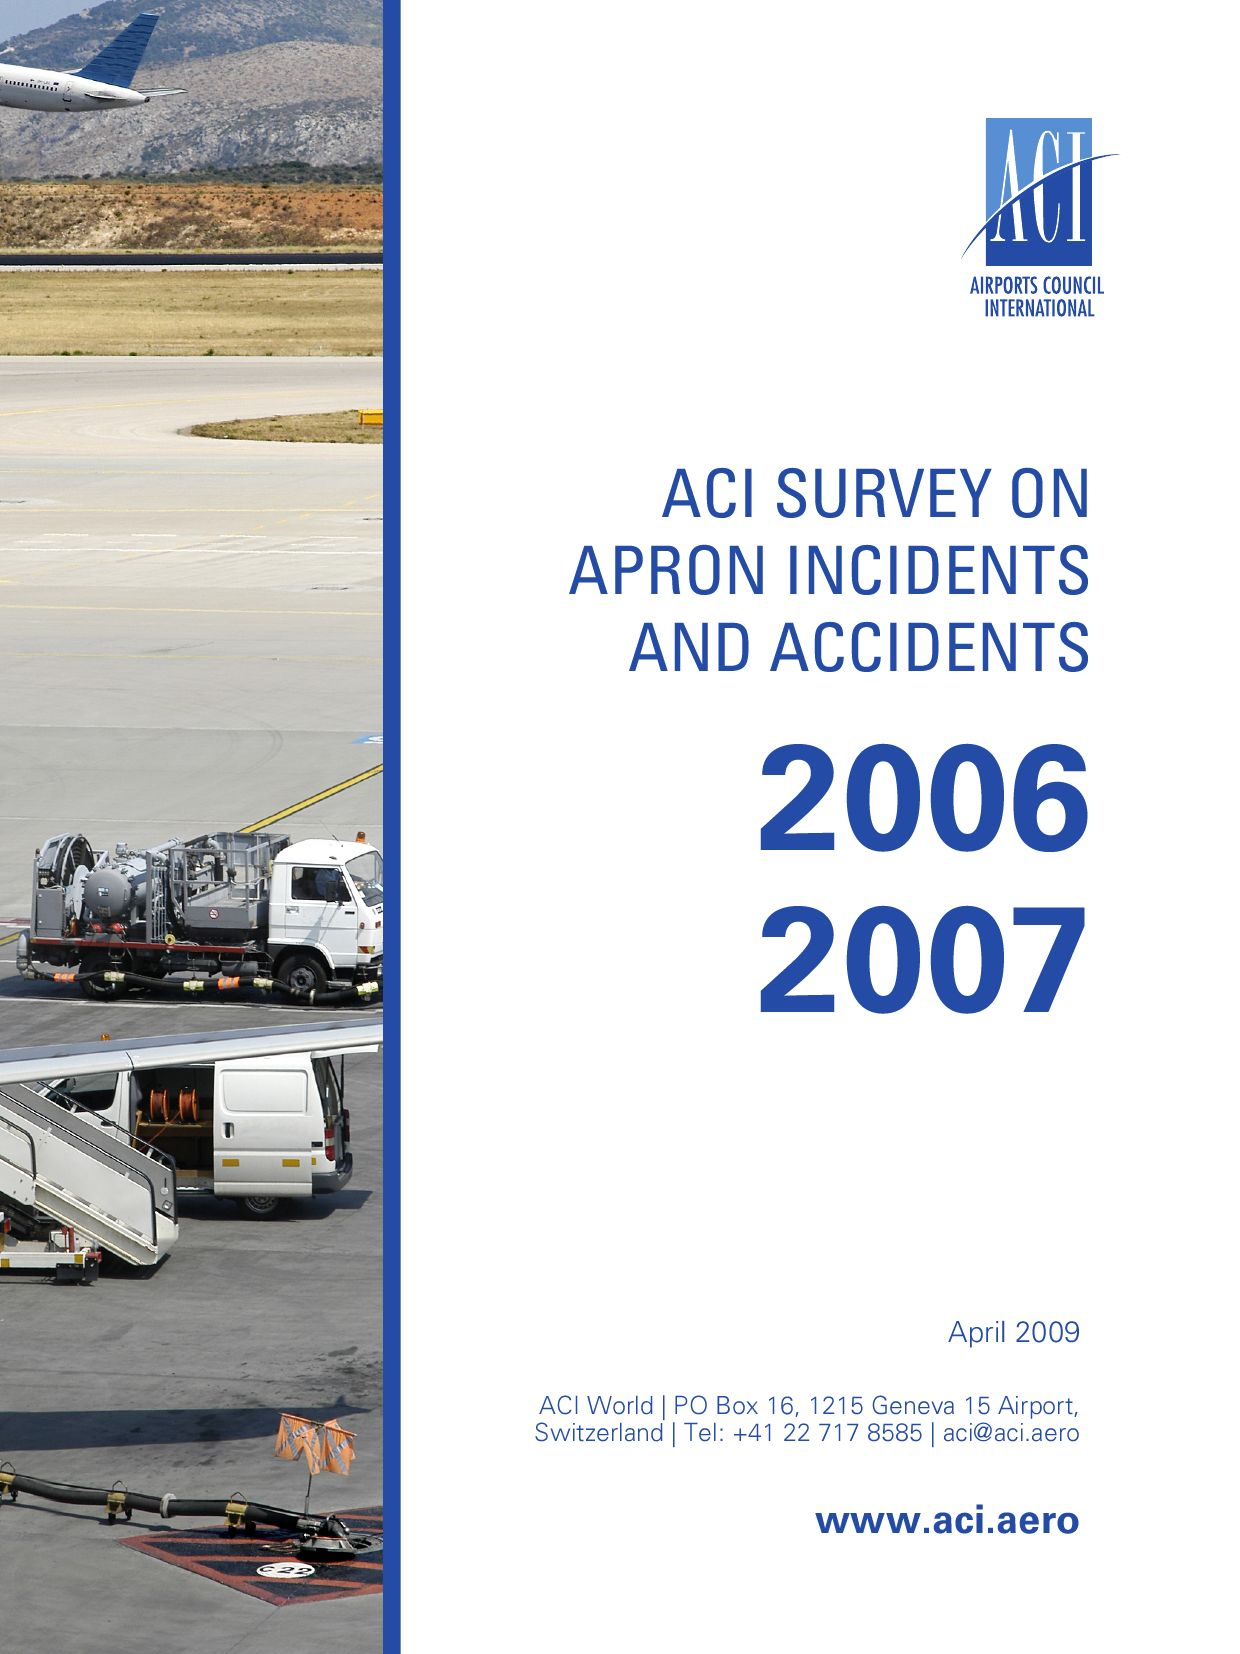 ACI Survey on Apron Incidents and Accidents 2006 2007 by Airports Council International - issuu